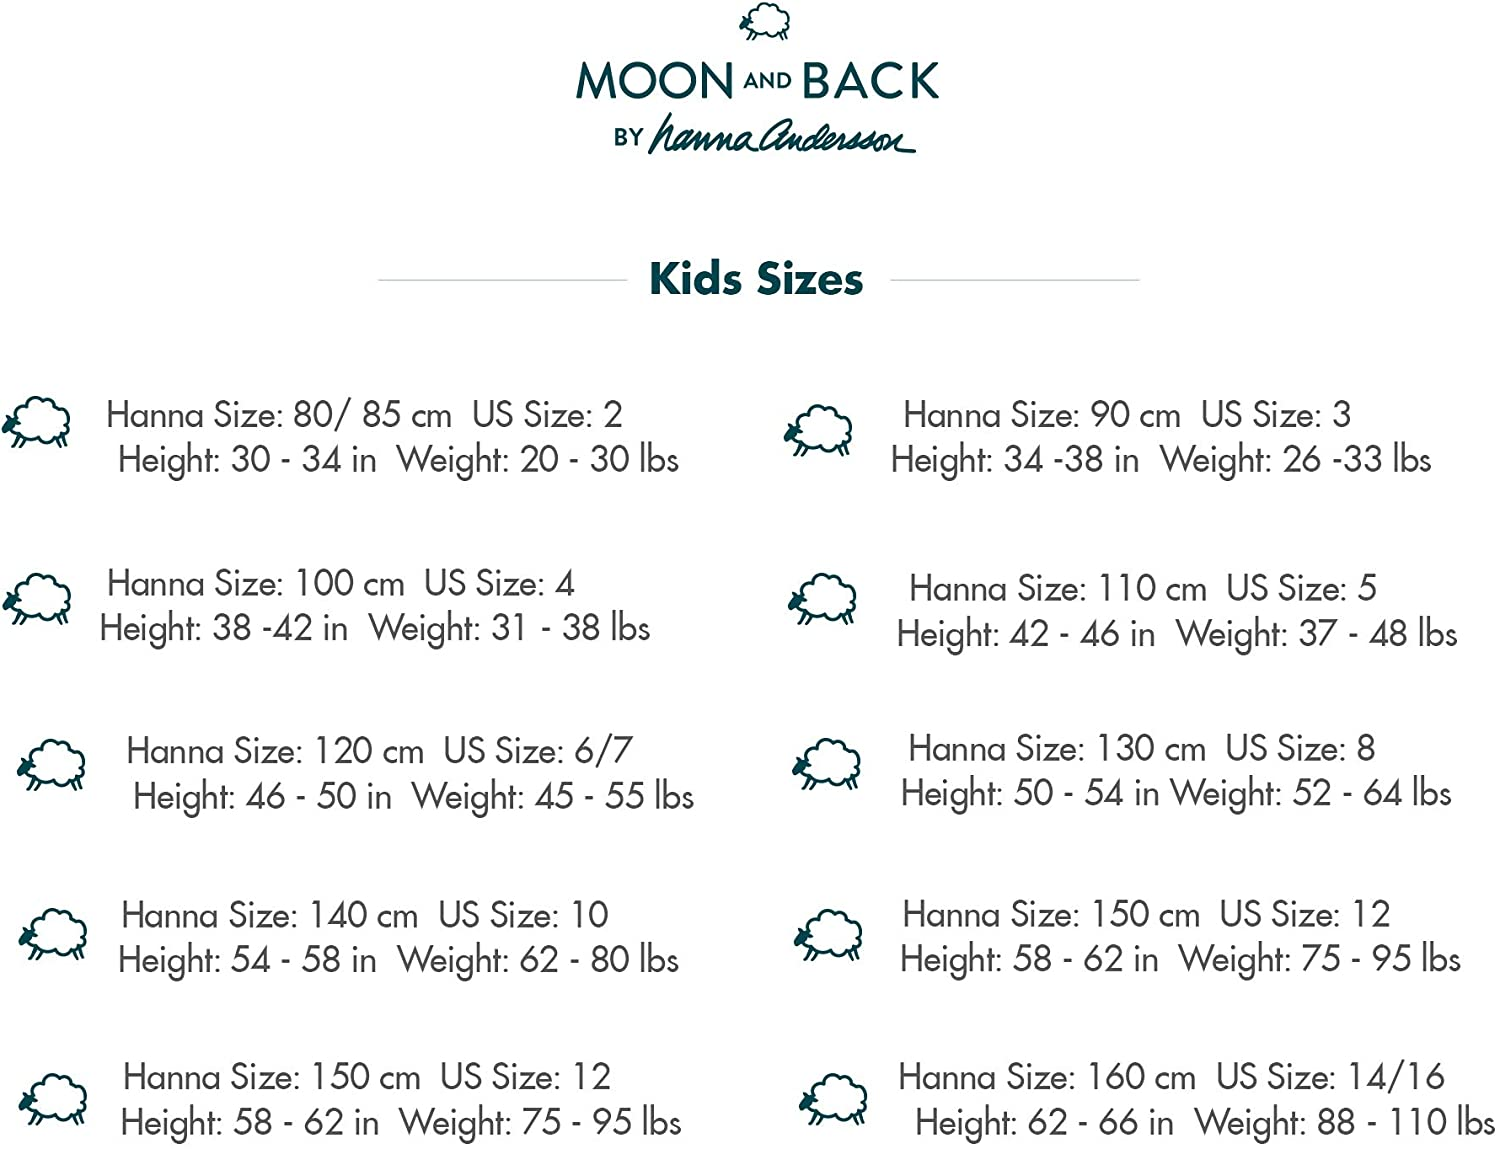 Moon and Back by Hanna Andersson Biancheria intima classica da donna confezione da 5 in cotone biologico